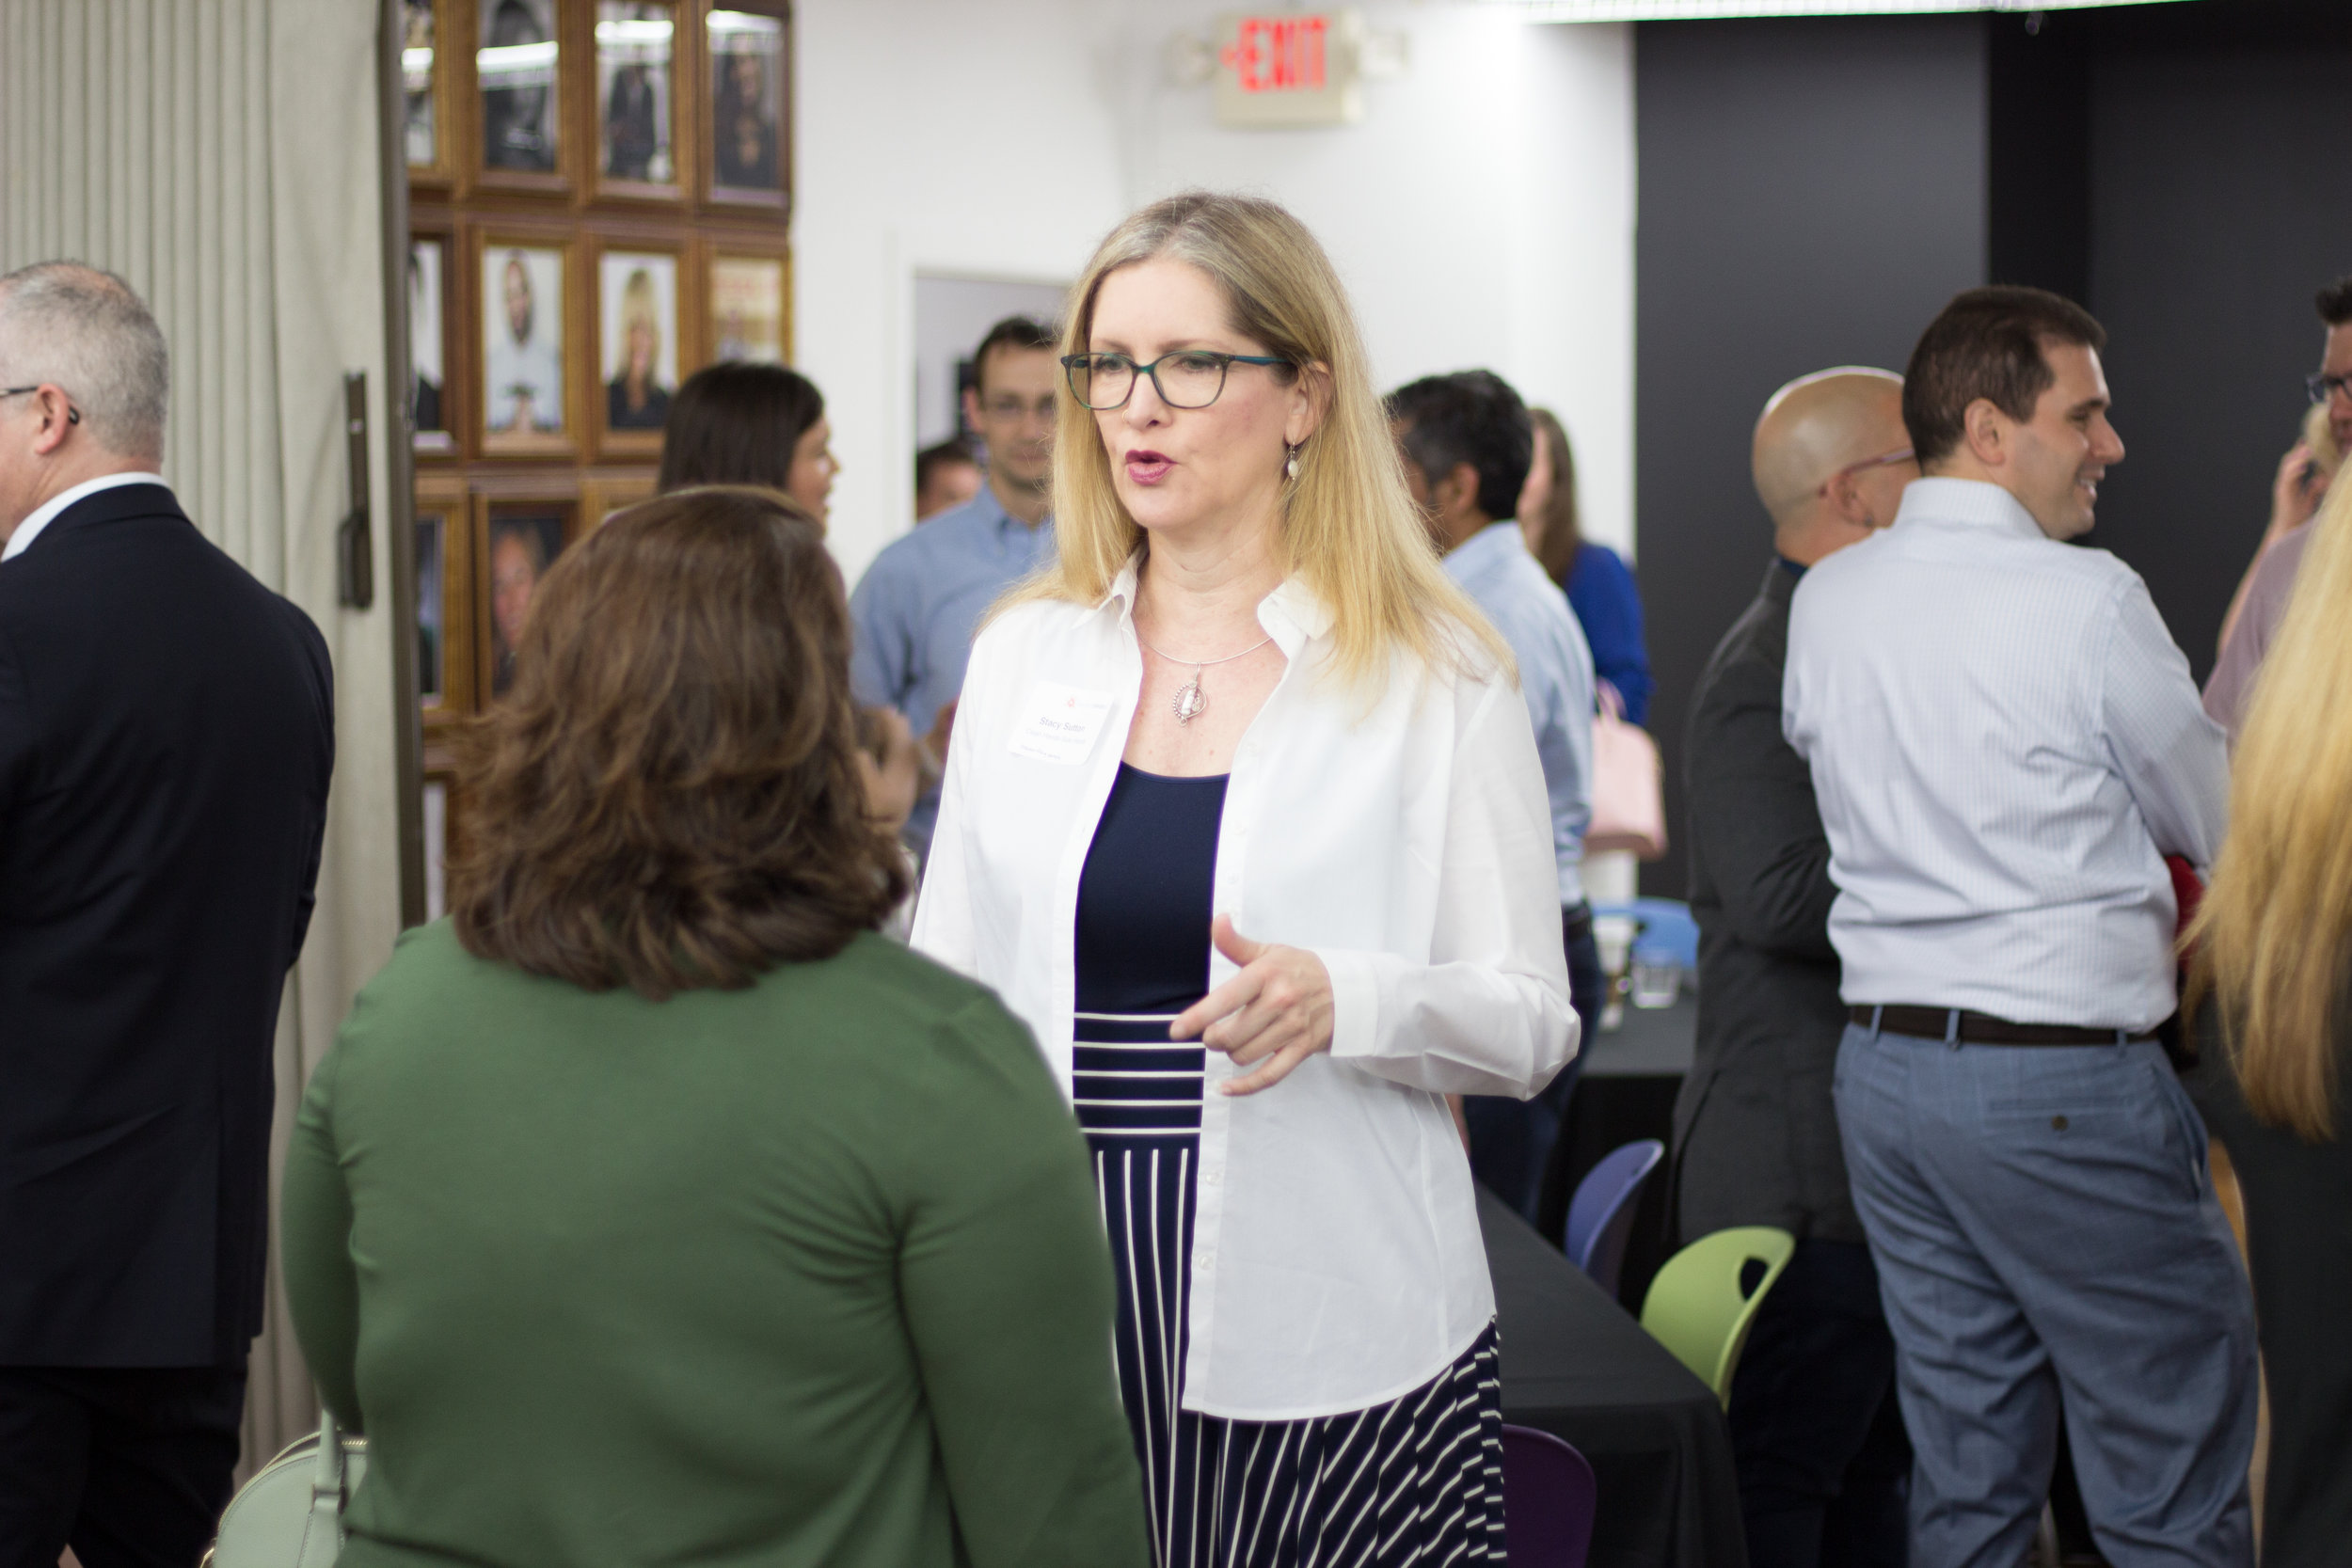 AgencySparks_#MarketersBreakfast_5.2019-0249.jpg